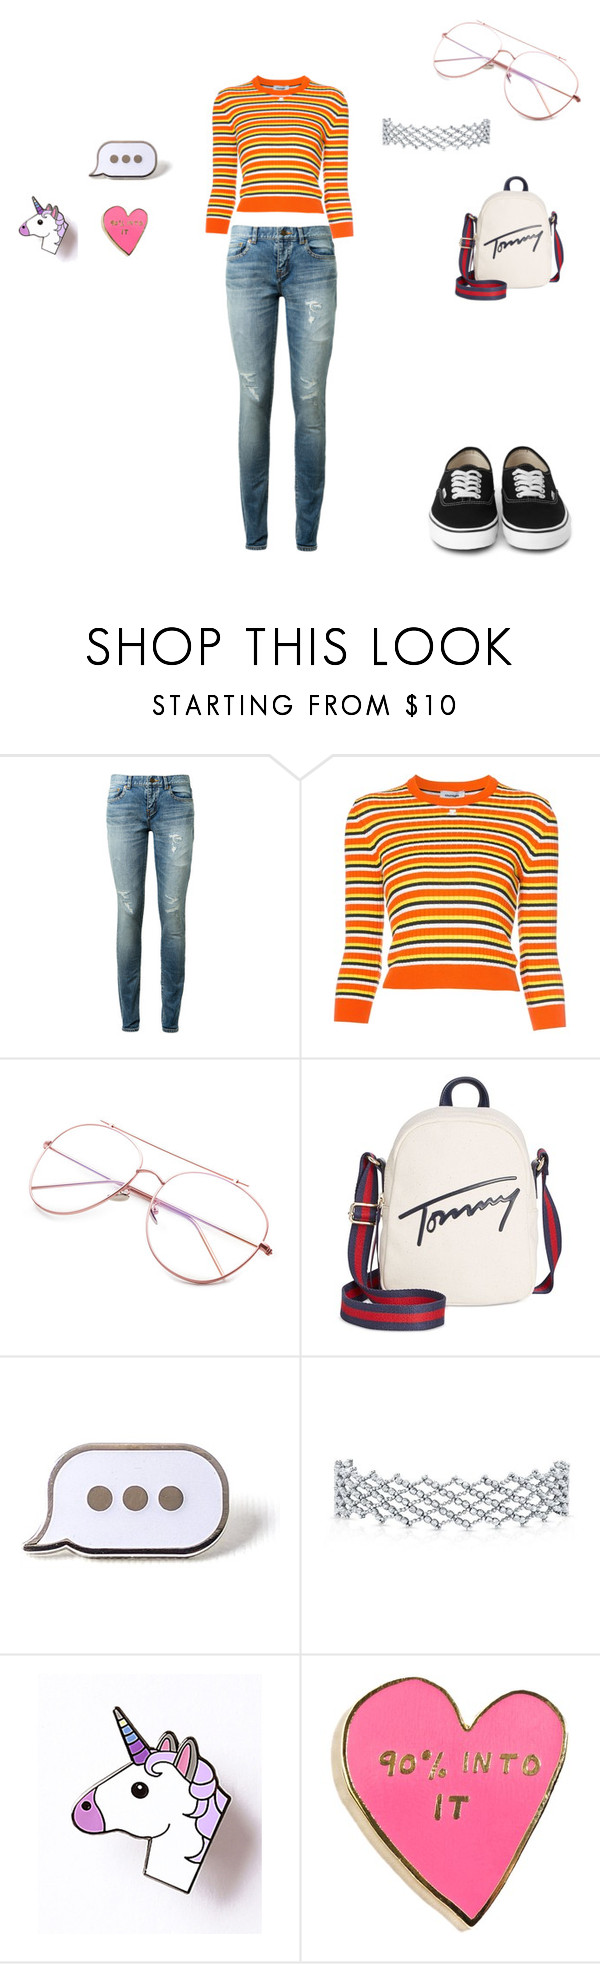 """""""Untitled #1815"""" by shadow-dxlvi on Polyvore featuring Yves Saint Laurent, Courrèges, Tommy Hilfiger, PINTRILL and Valley Cruise Press"""